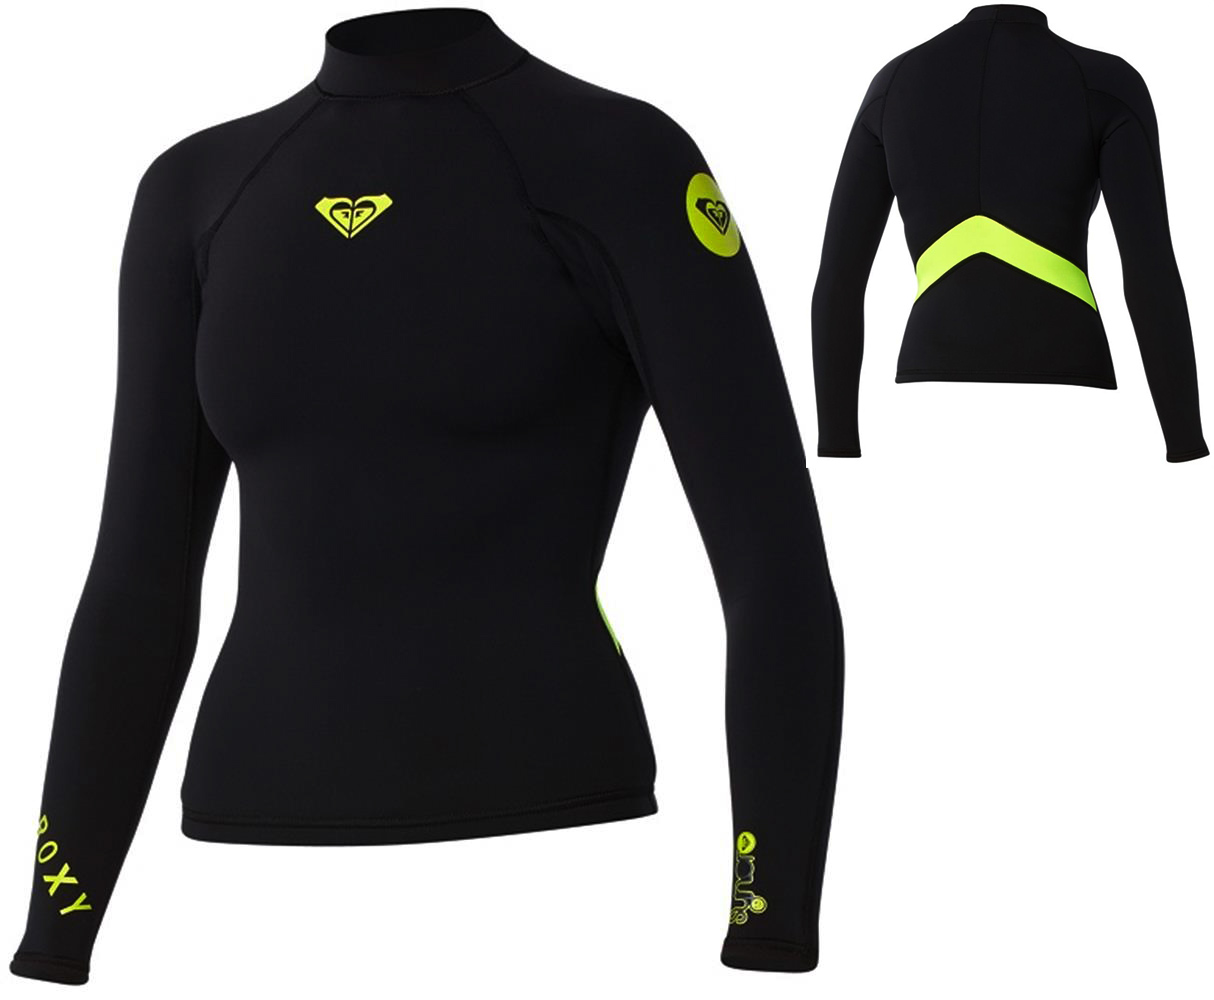 fee1bc54c8fc Roxy Syncro Neoprene Jacket 1.5mm Long Sleeve - LIMITED EDITION - Black  Yellow | Pleasure Sports